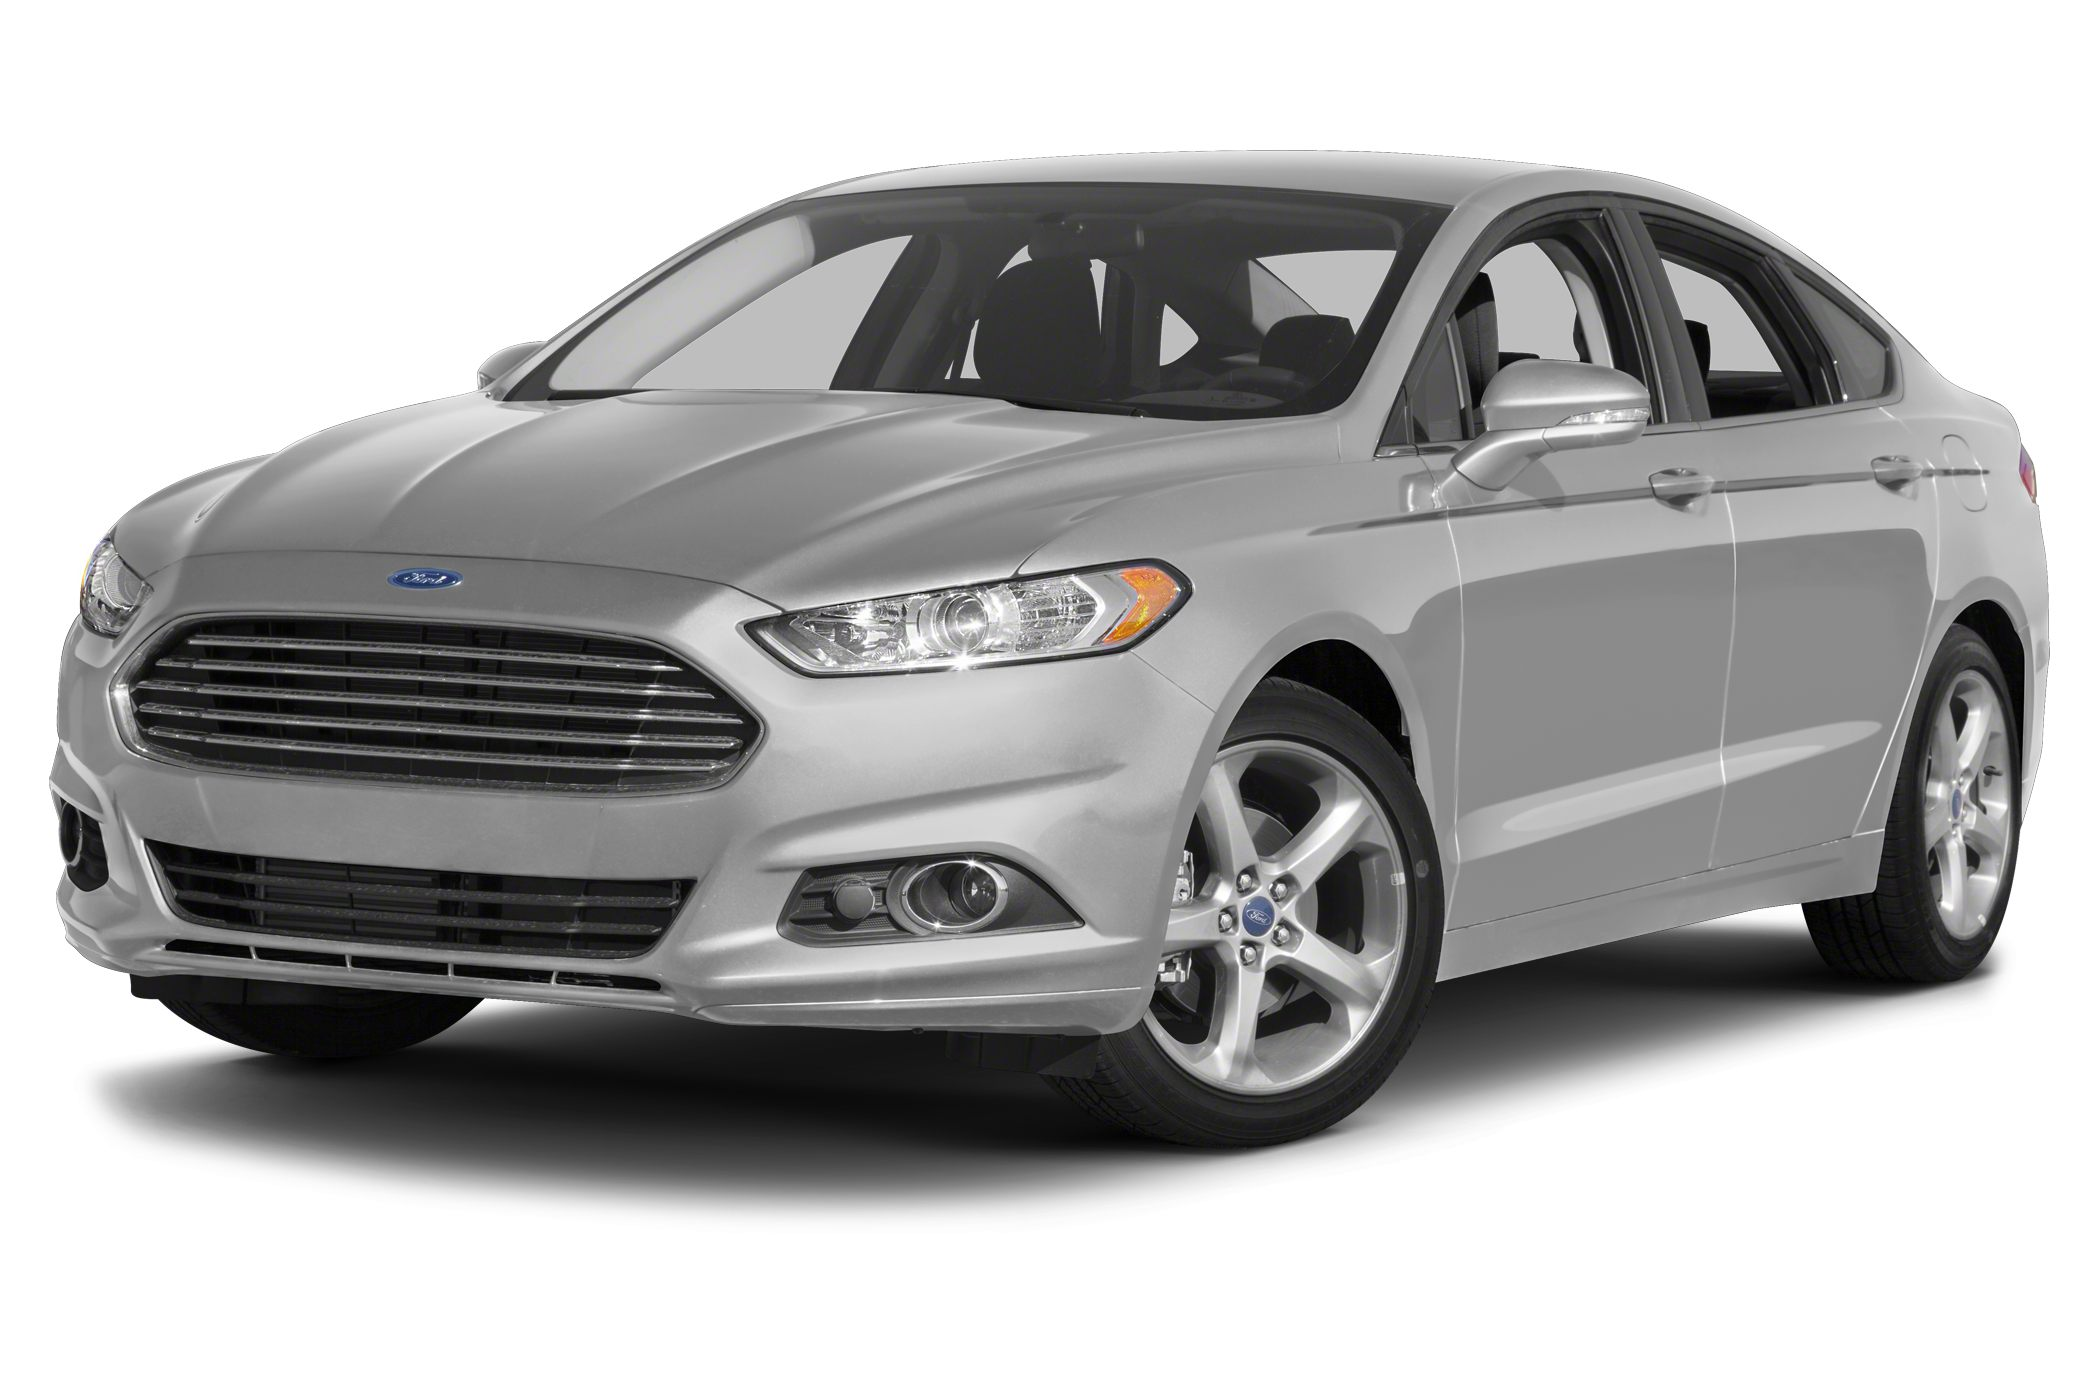 2013 Ford Fusion SE Sedan for sale in Davis for $16,999 with 27,362 miles.